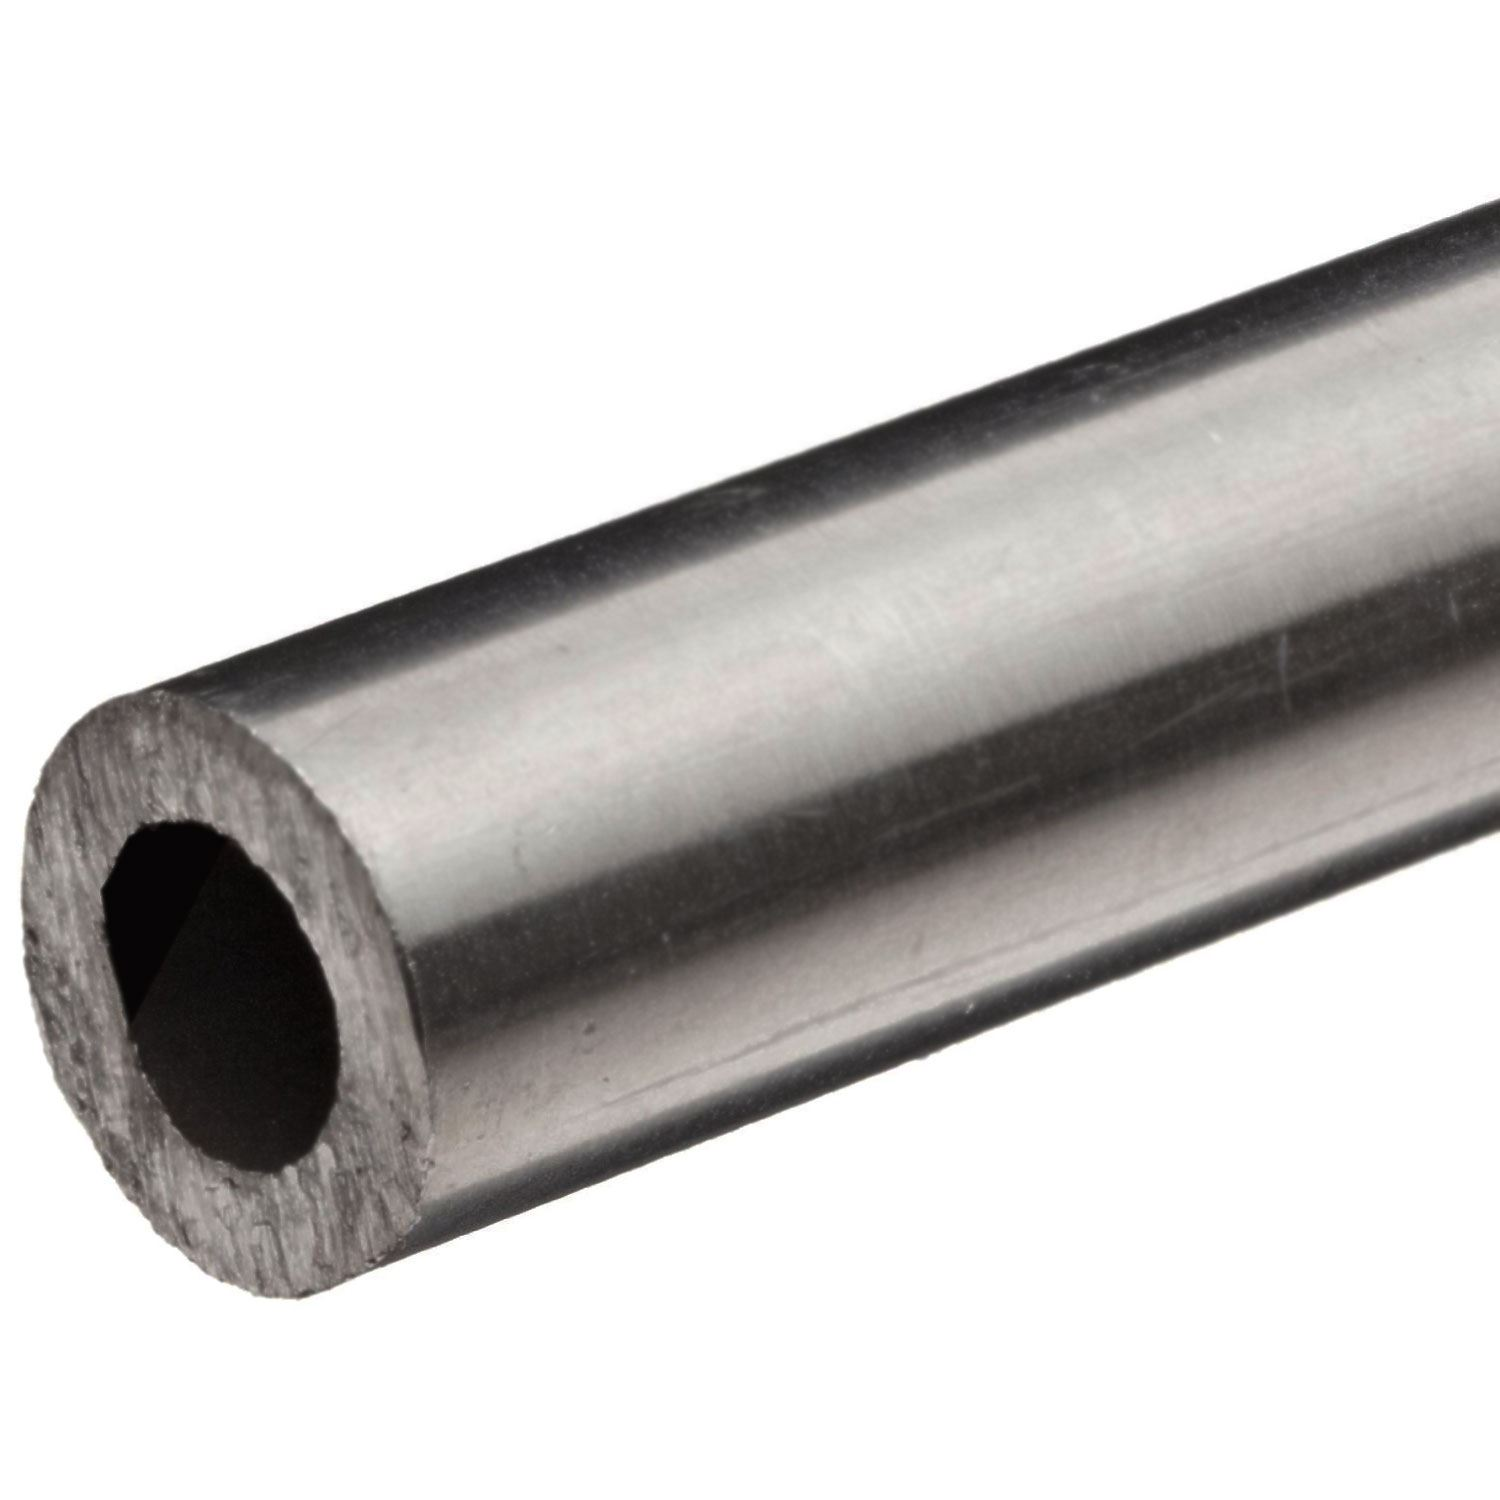 Round Steel Pipes : H stainless steel round tube quot od id